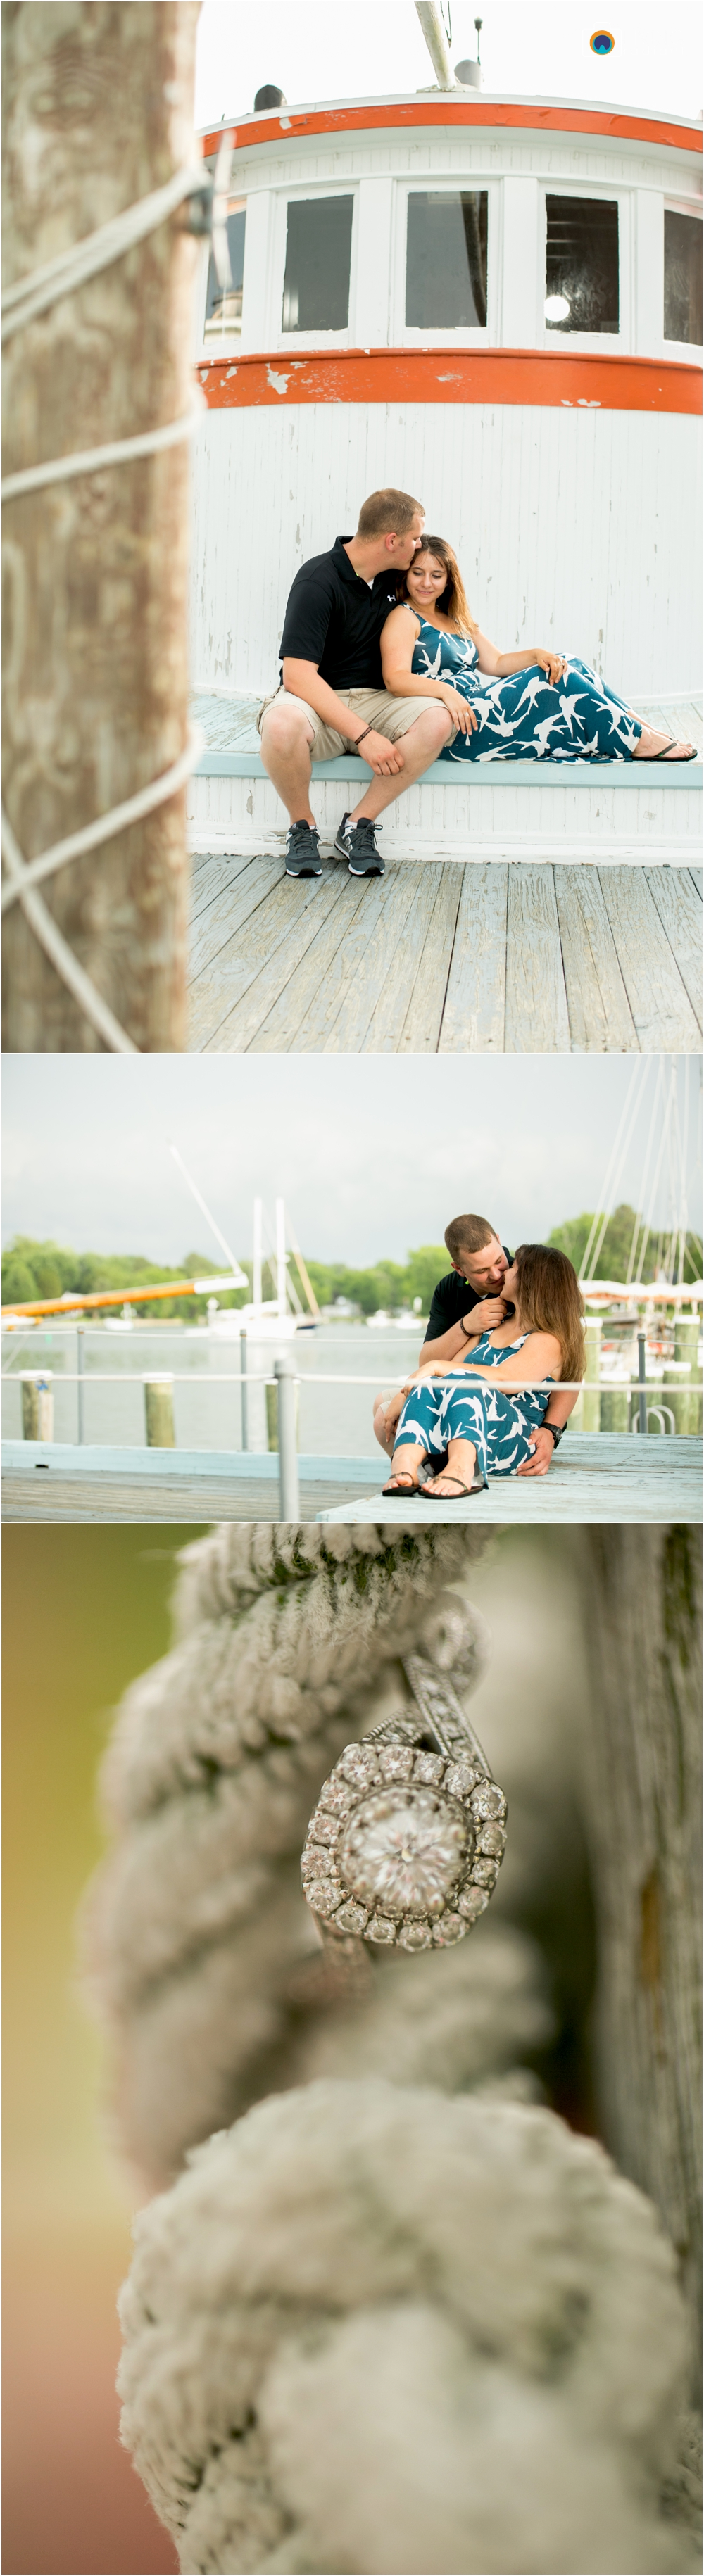 St.-Michaels-Engagement-Wedding-Photography-Living-Radiant-Photography-on-the-water-photos-Megan-Kevin_0019.jpg